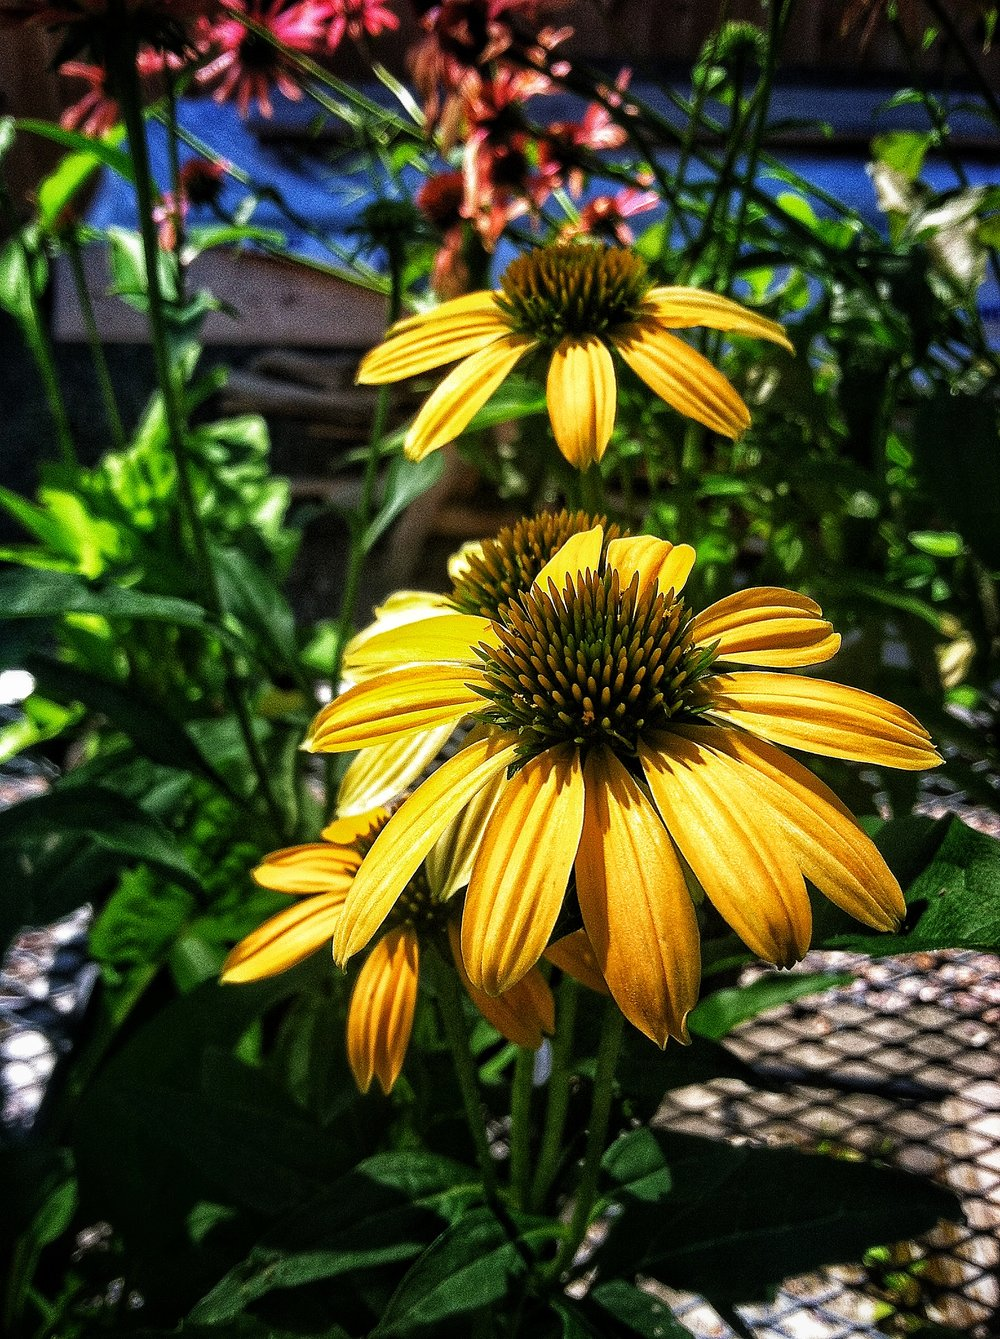 Echinacea purpurea  'Cheyenne Spirit' blooms prolifically in several shades of yellow and red.